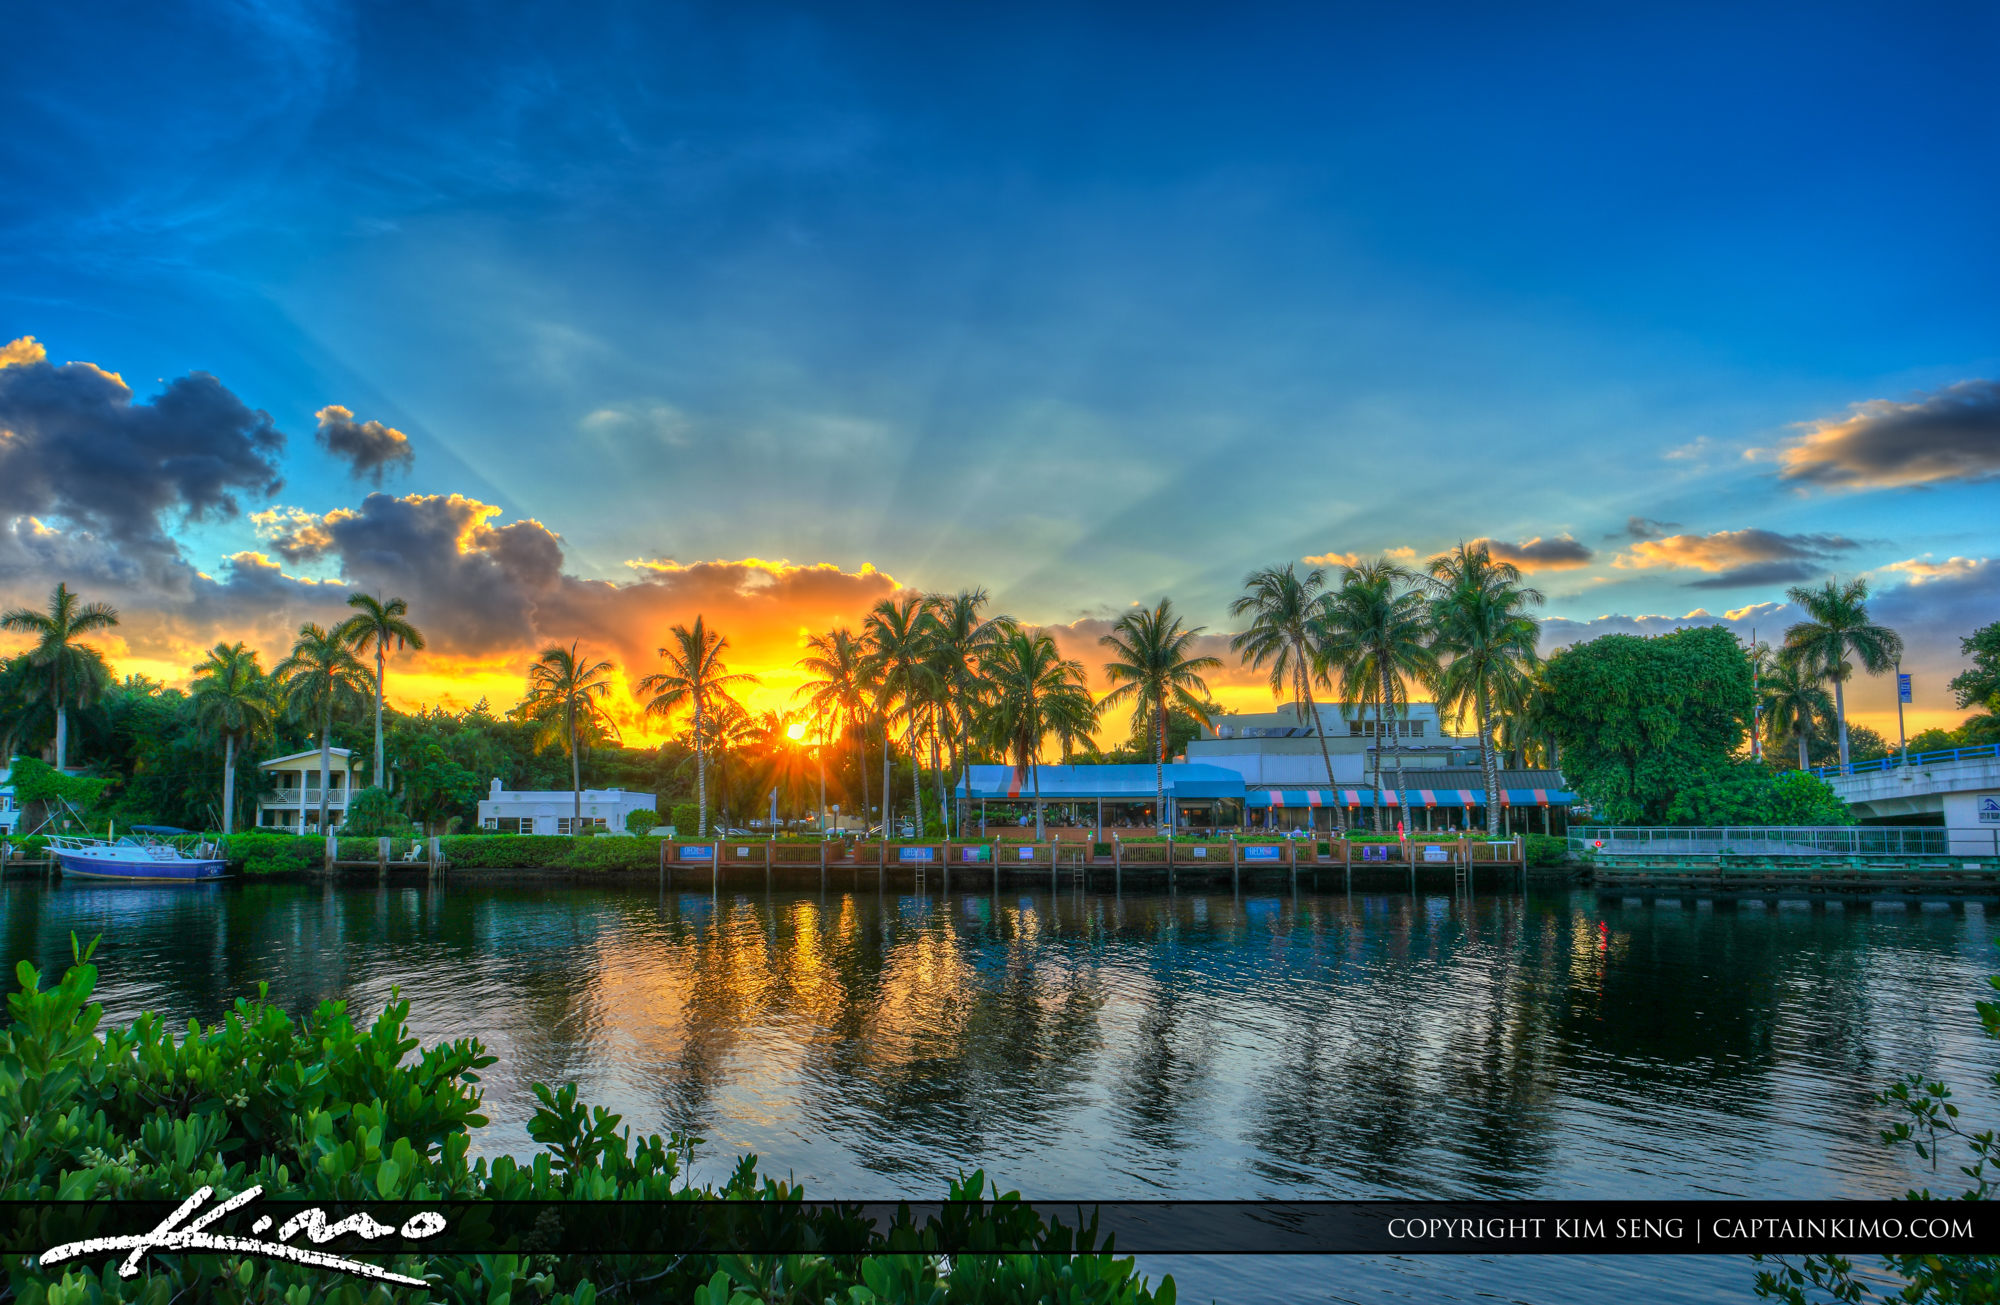 Delray Beach Downtown Sunset at Waterway